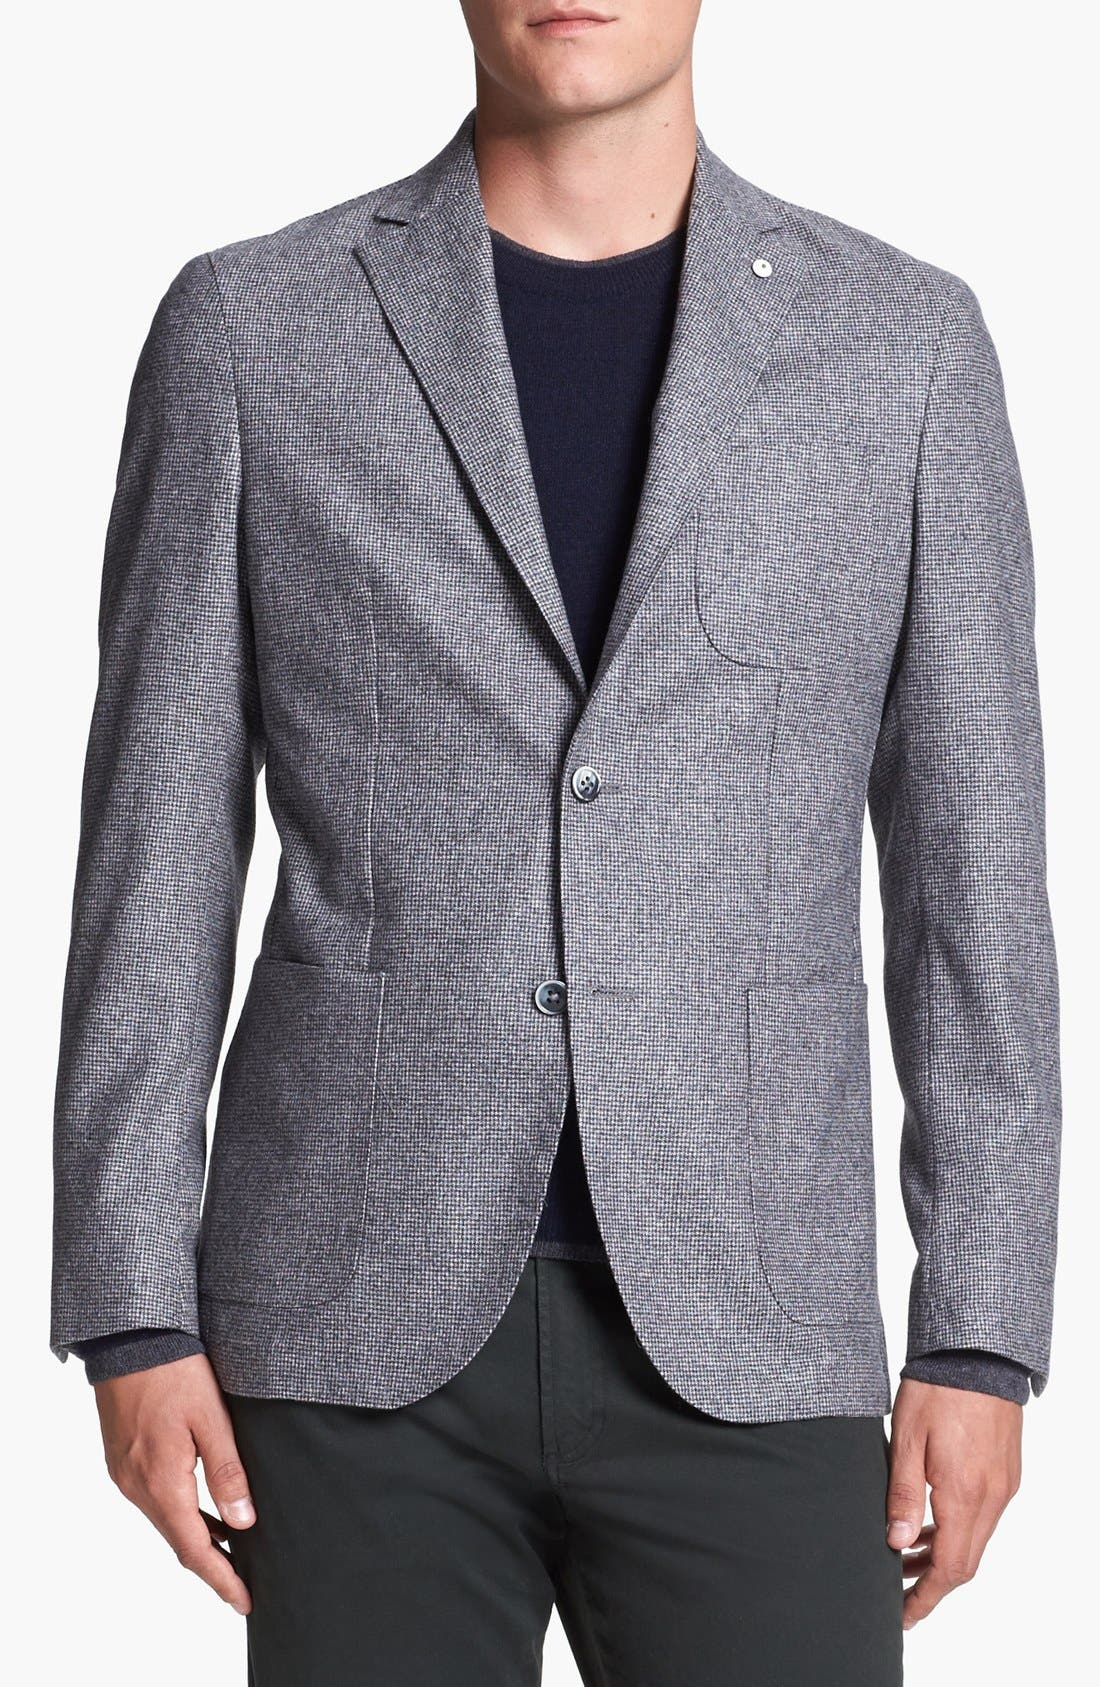 Main Image - Lubian Houndstooth Flannel Wool Sportcoat